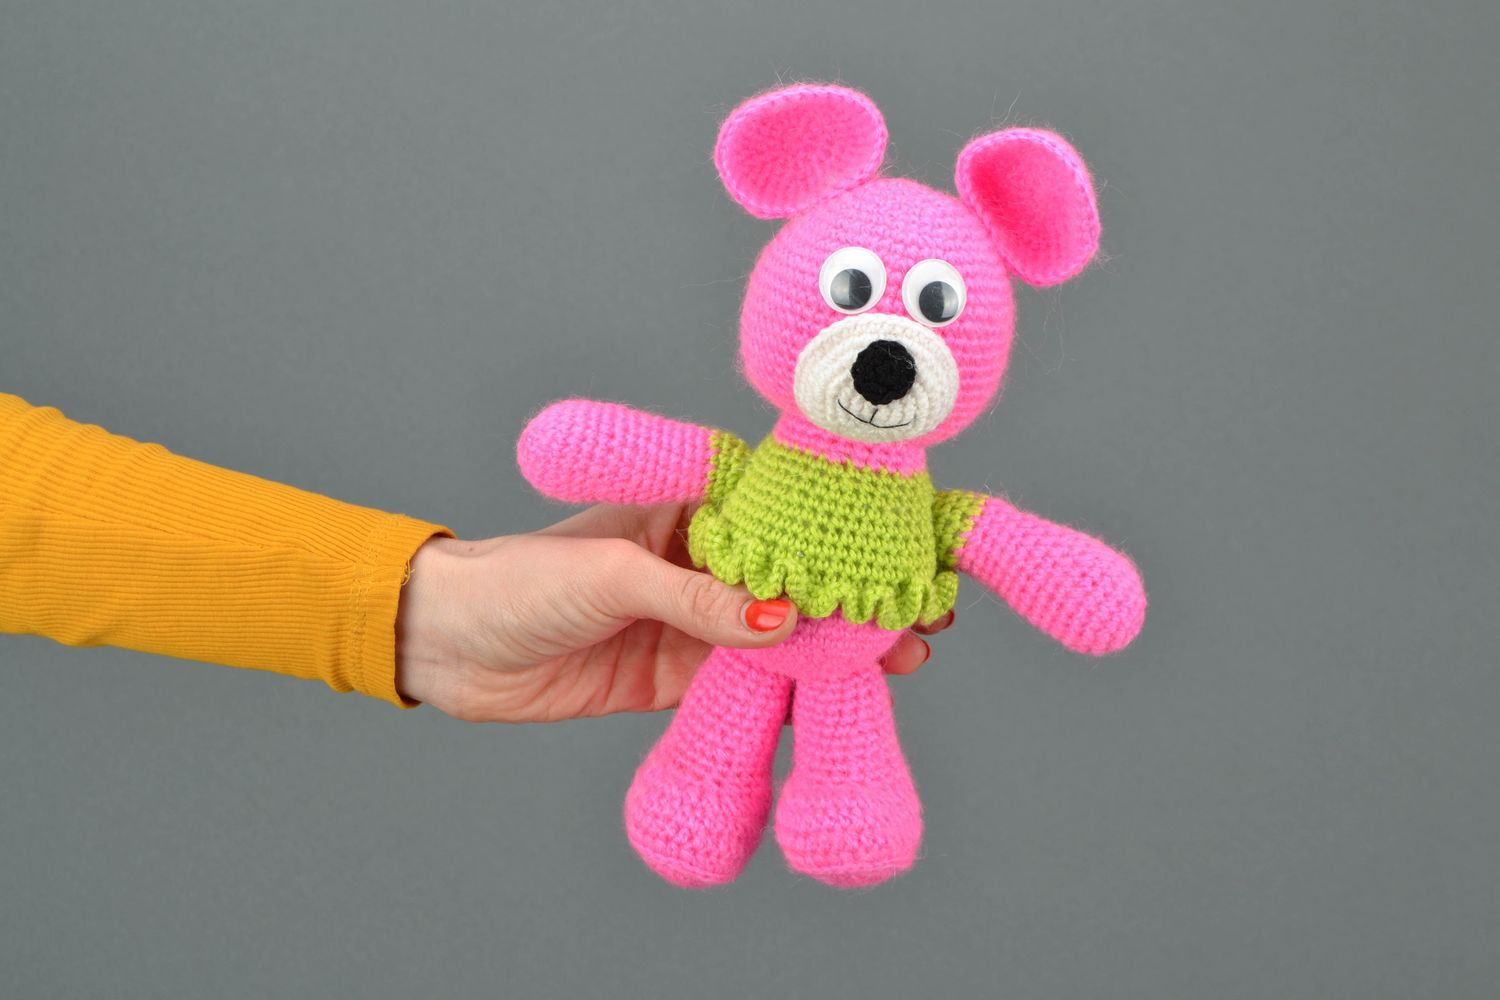 Soft crochet toy Pink Bear in Jacket photo 2